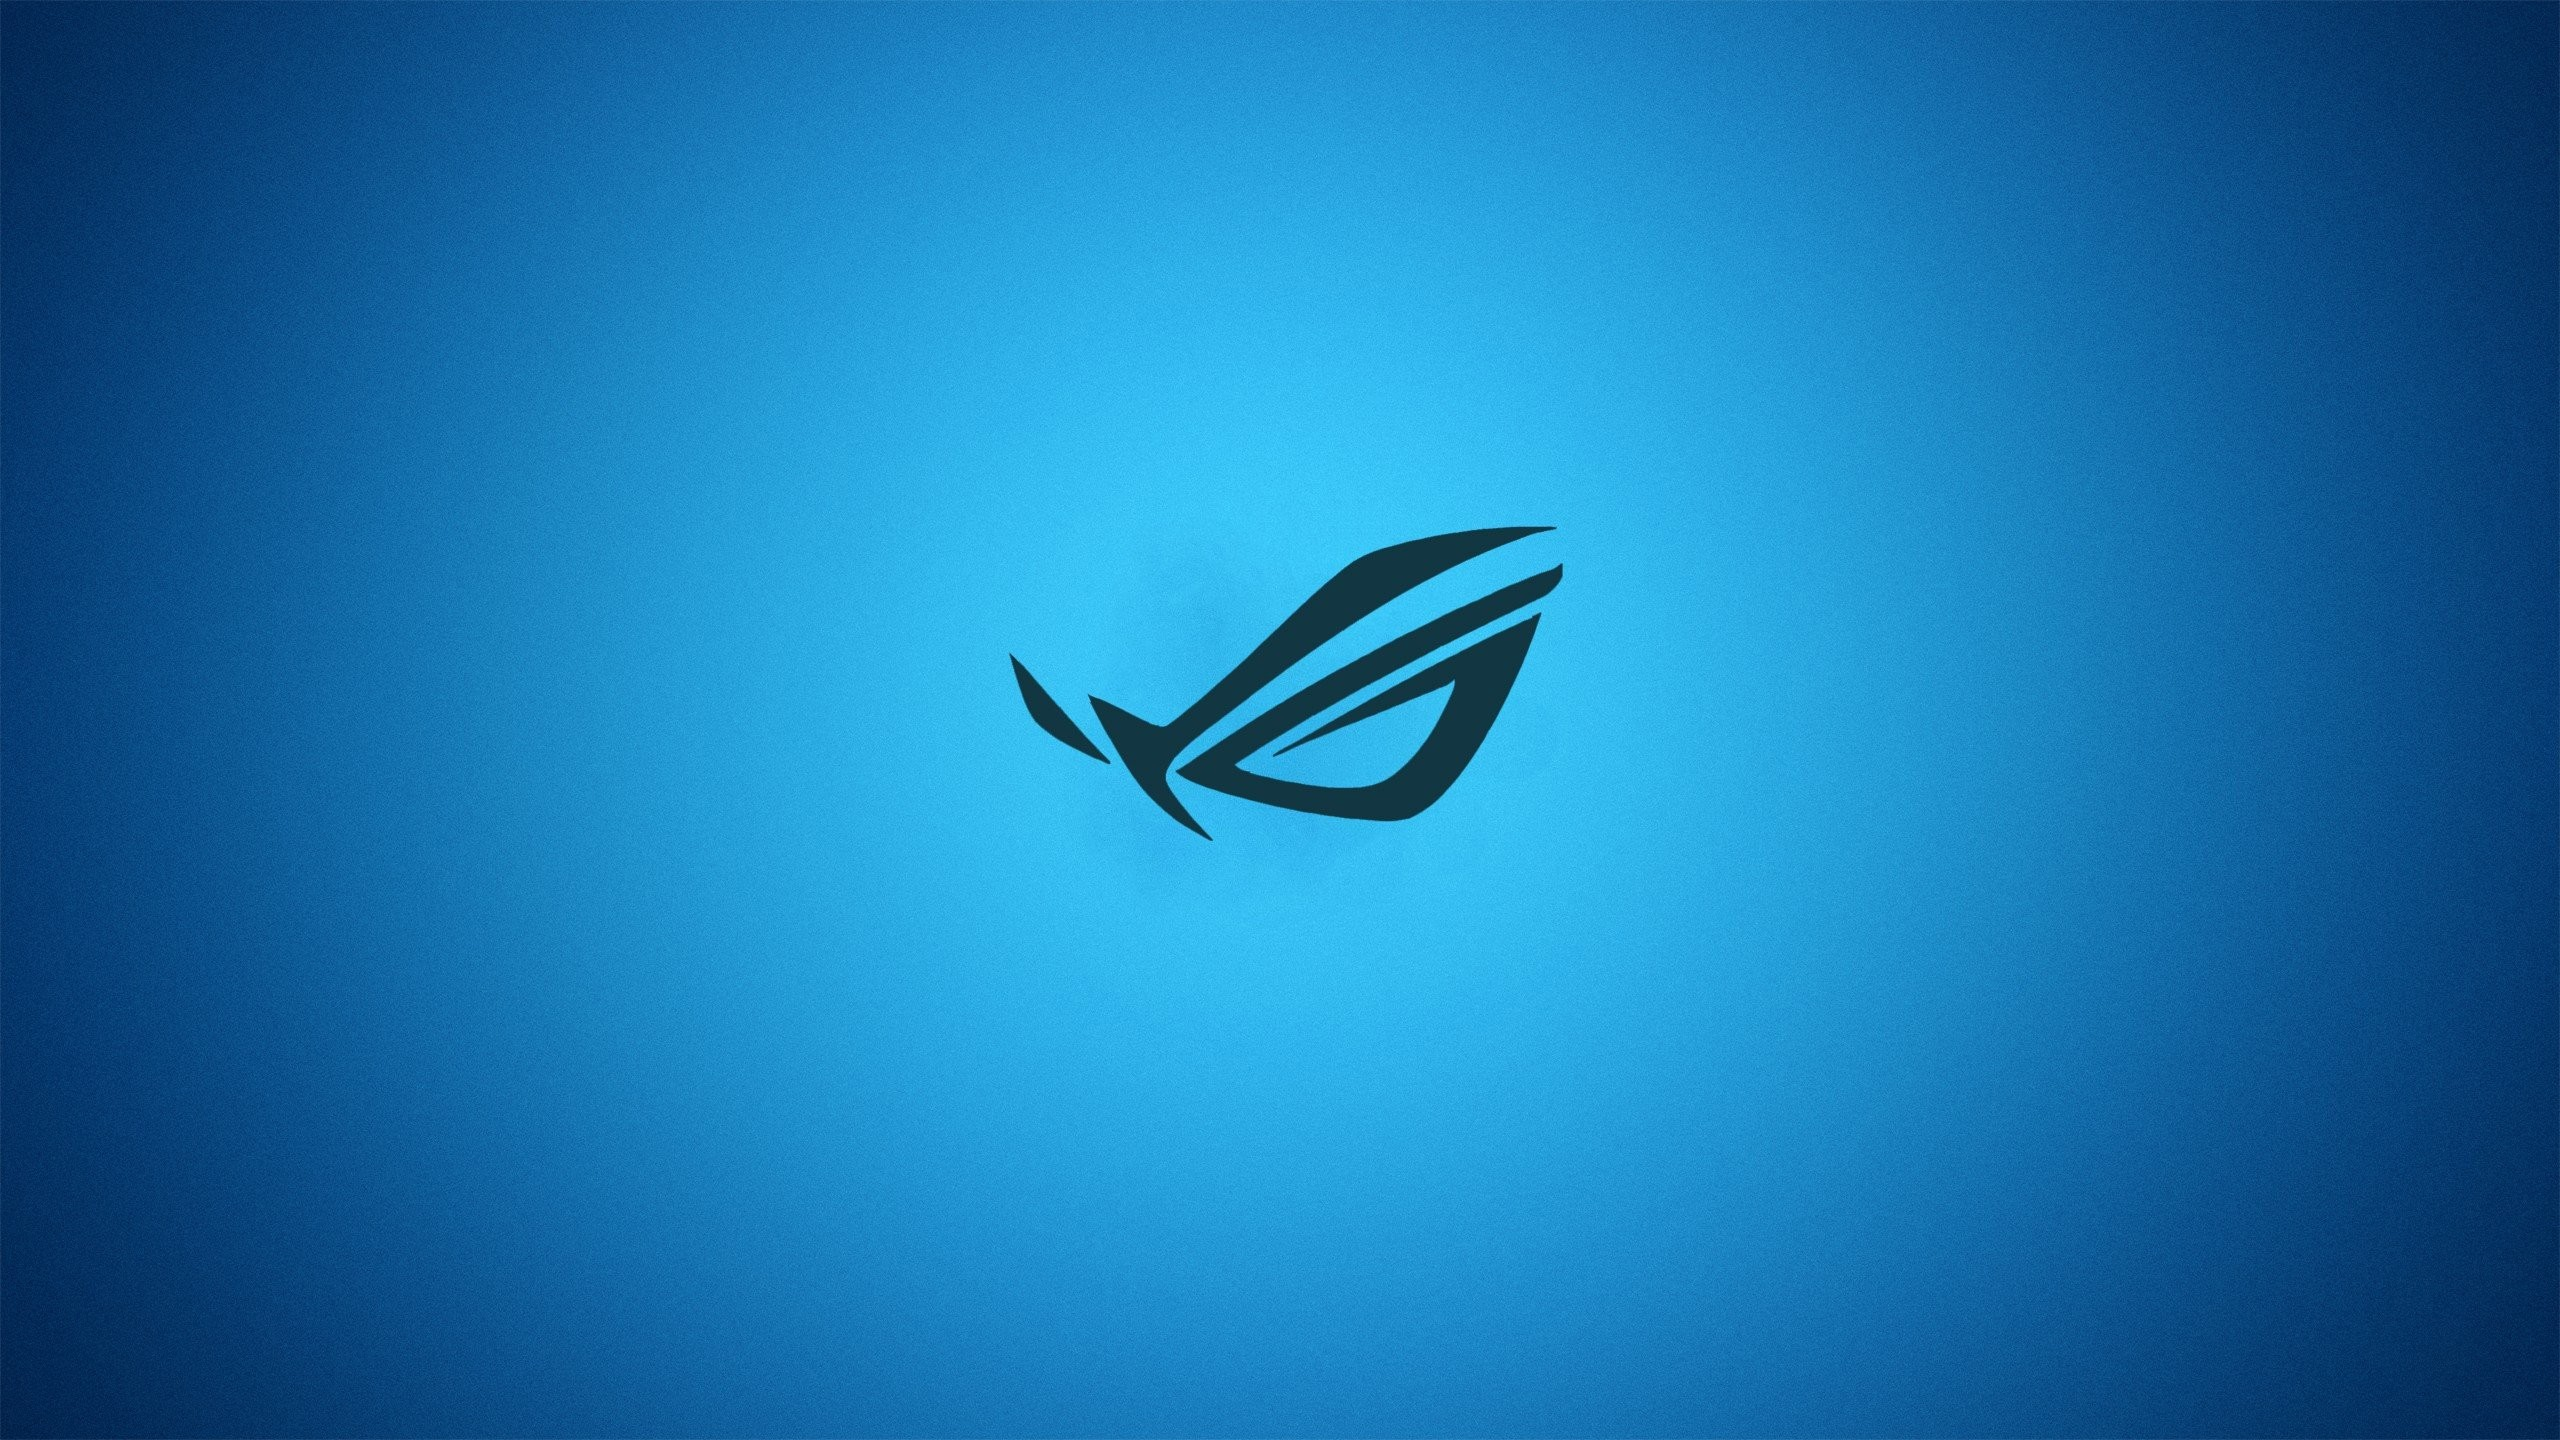 2560x1440 Awesome Blue Gaming Wallpaper